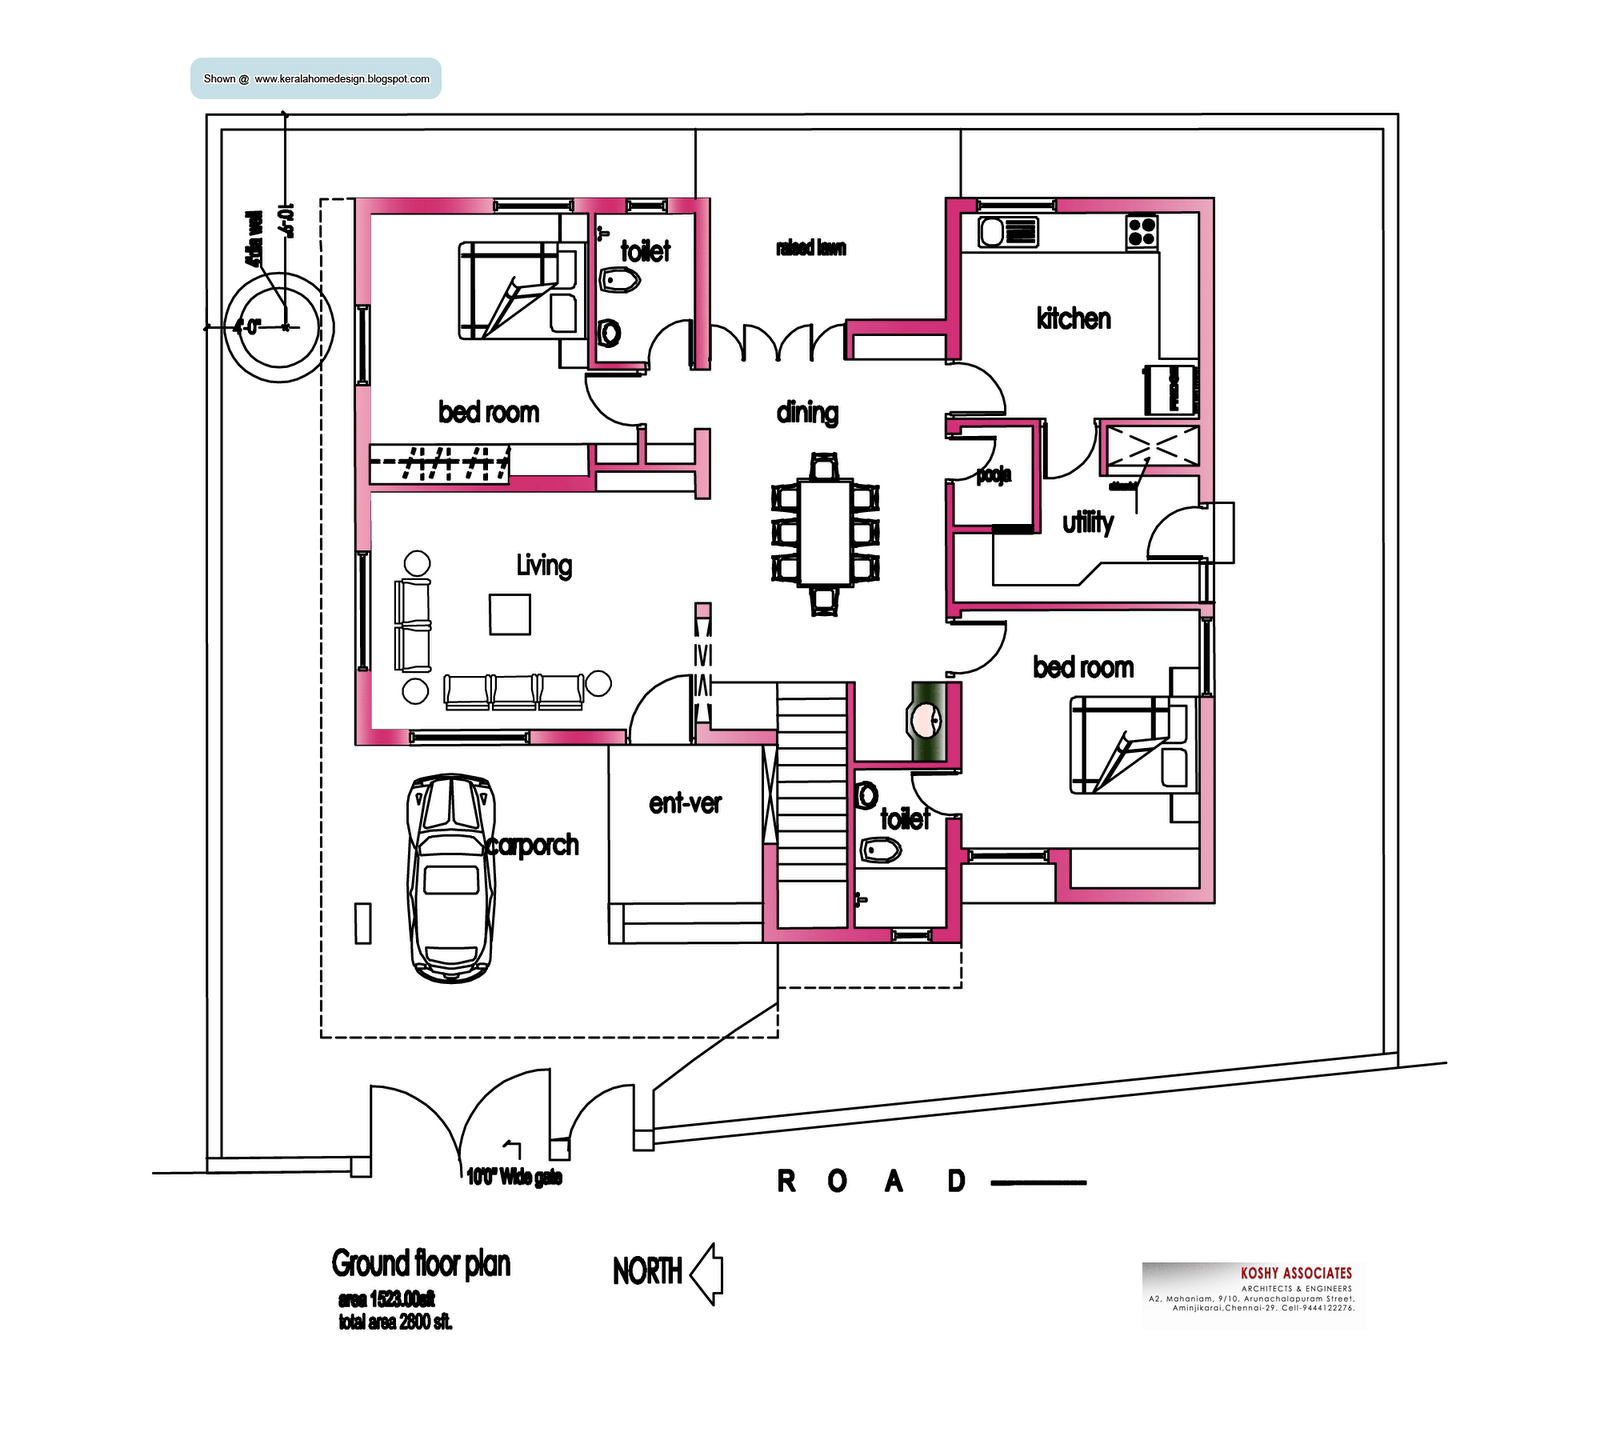 Image detail for modern house plan 2800 sq ft kerala for Plan your home design